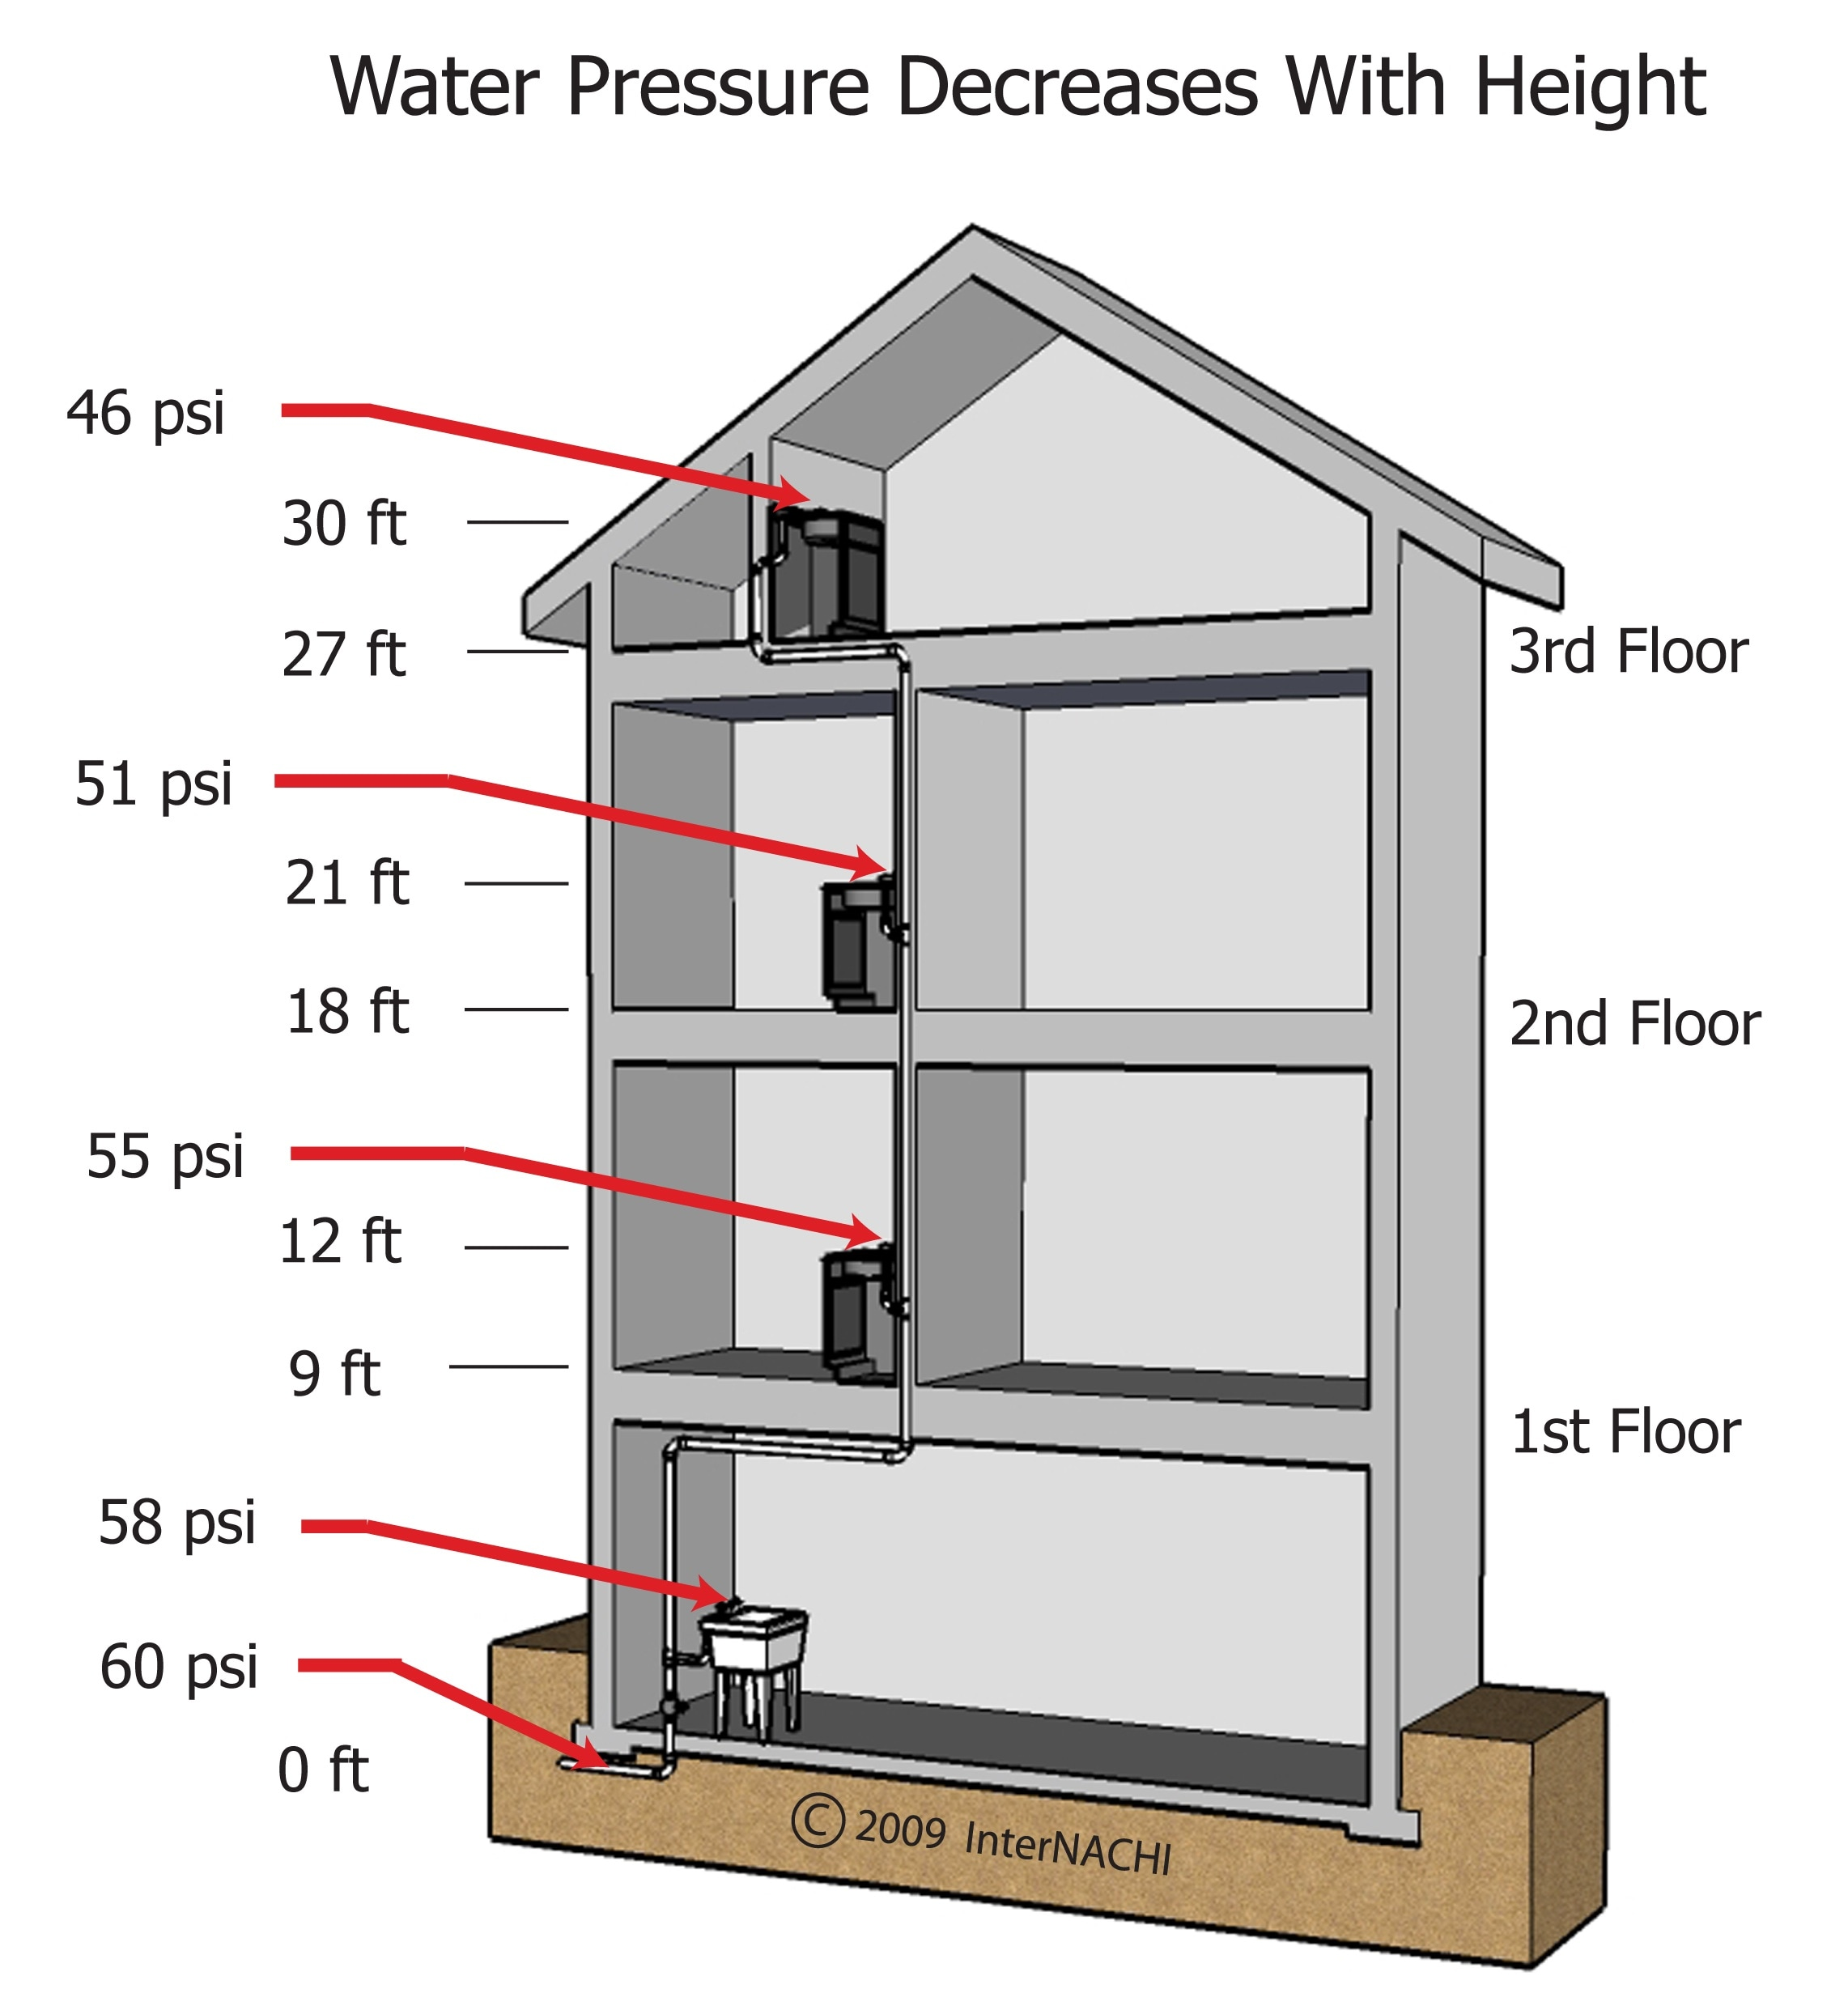 Water pressure decreases with height.